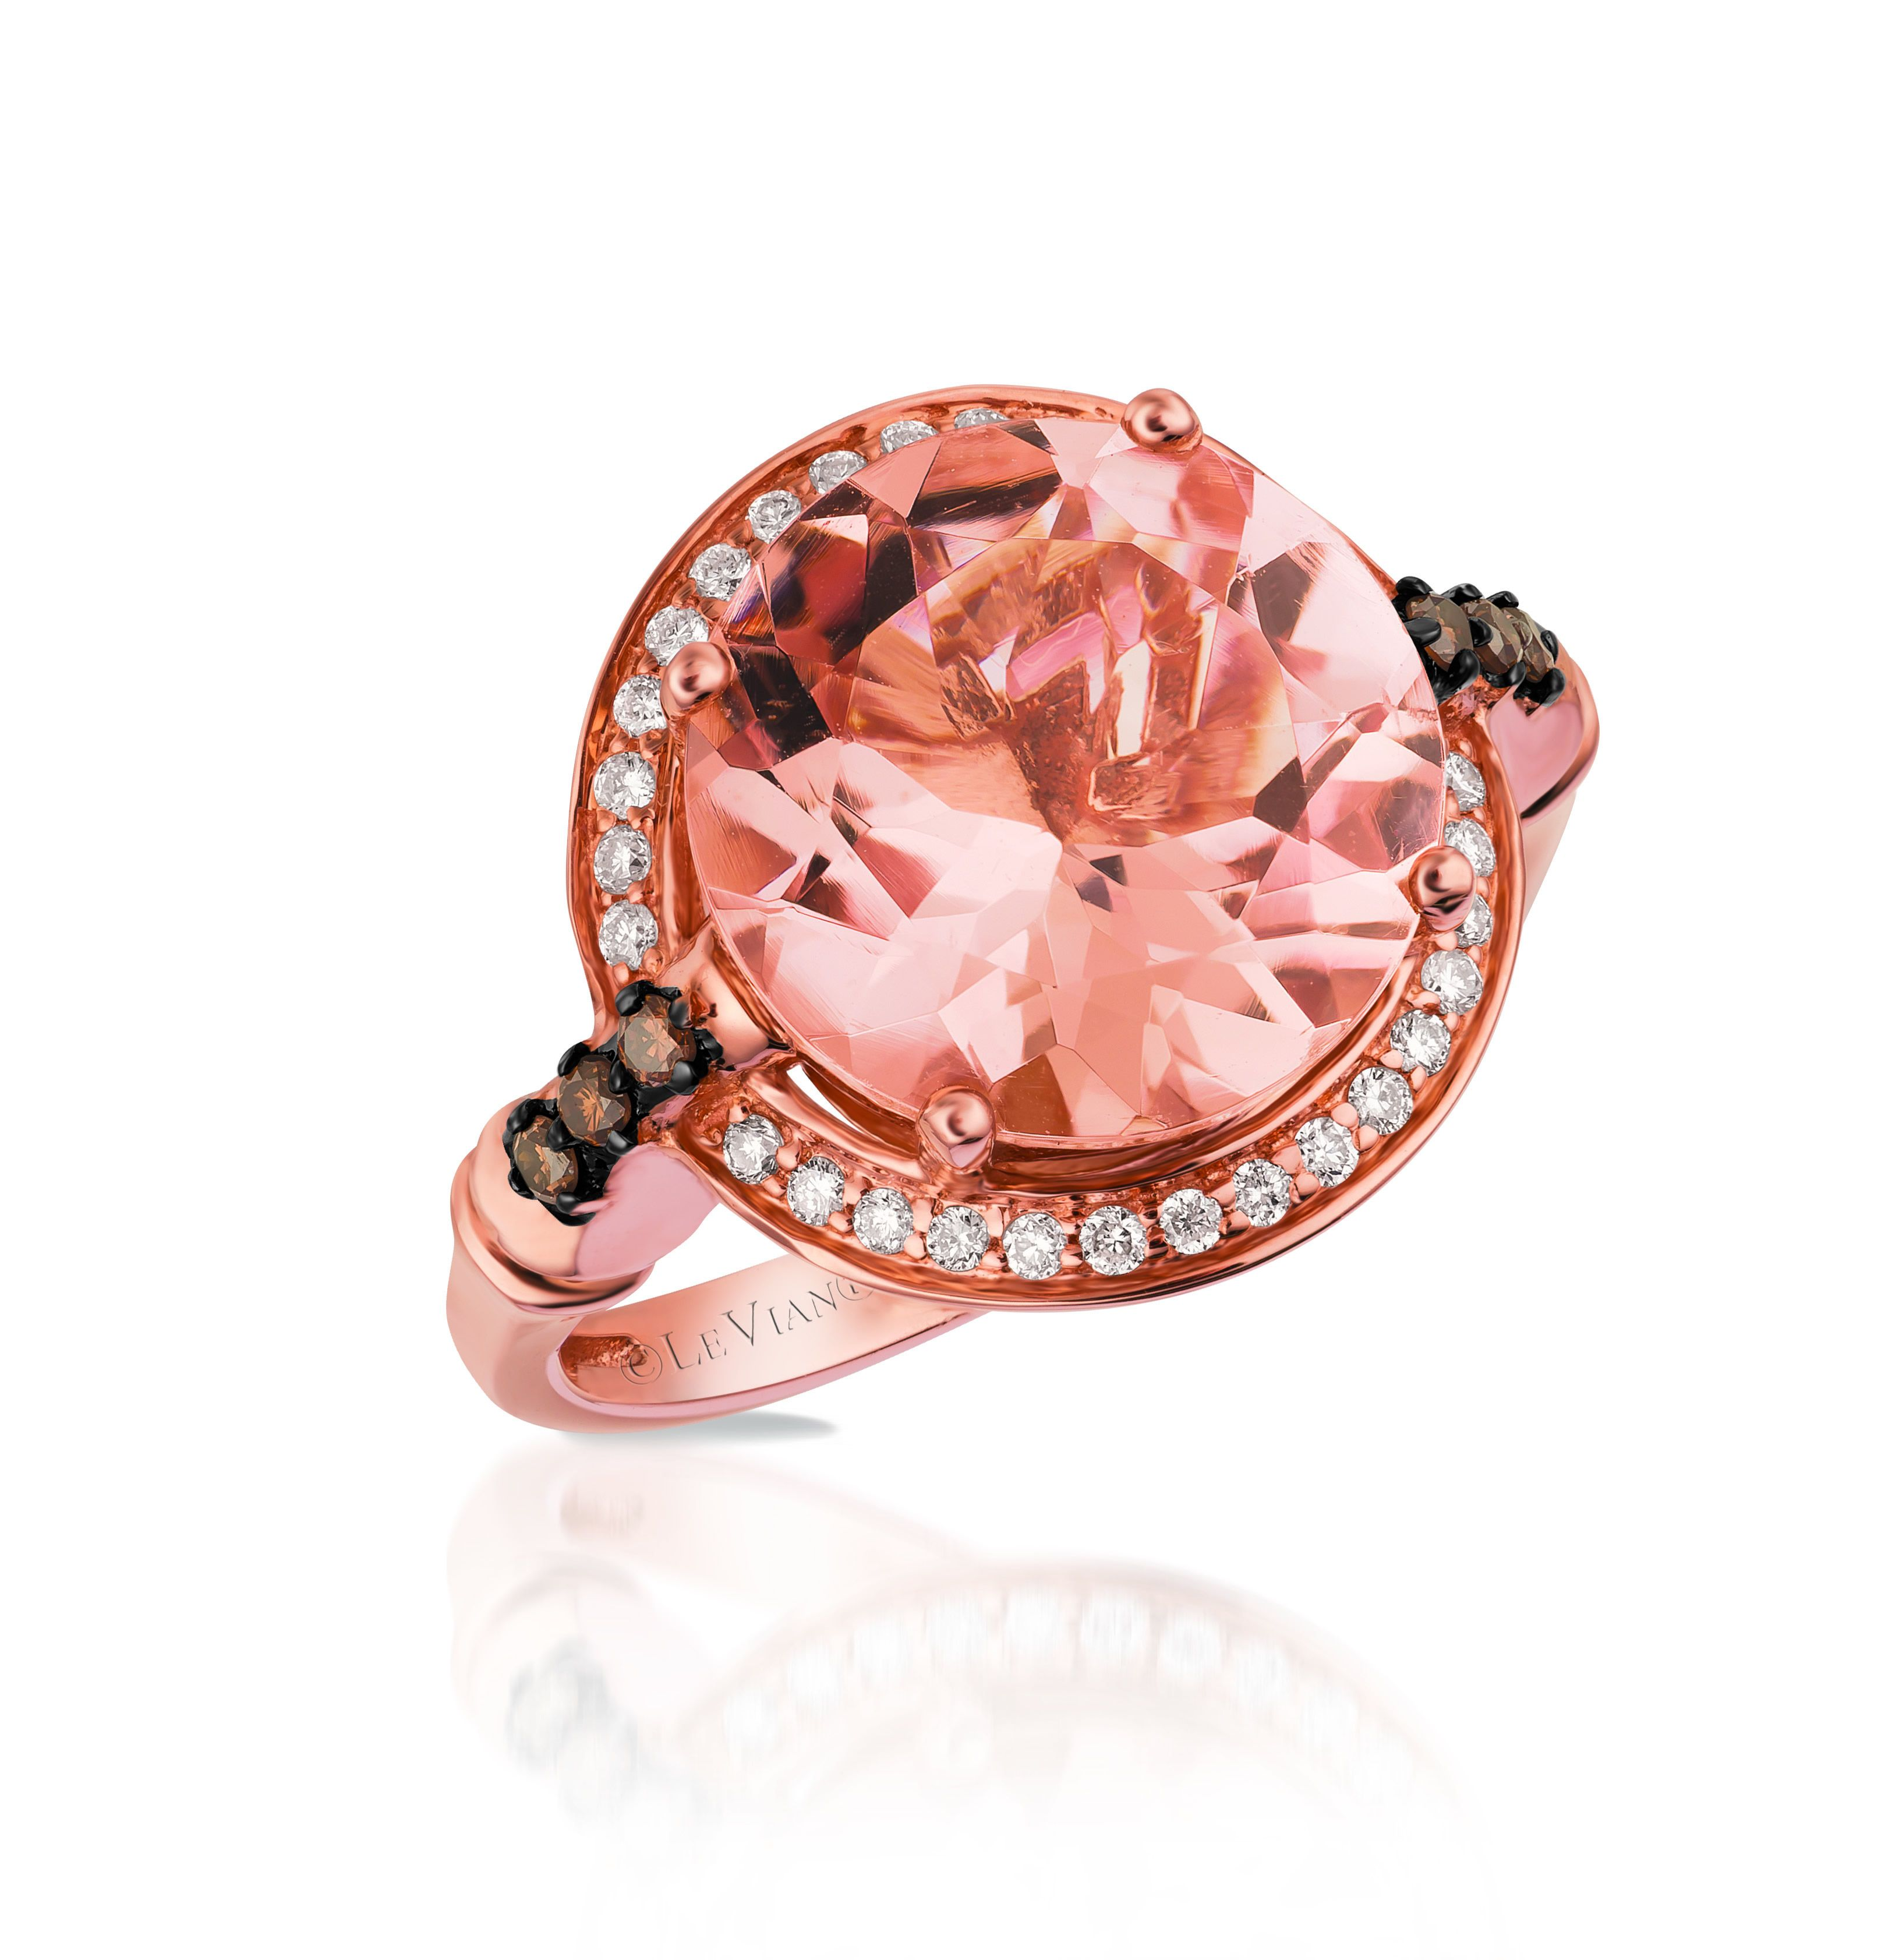 Le Vian Chocolatier Ring | Le vian, Peach and Diamond